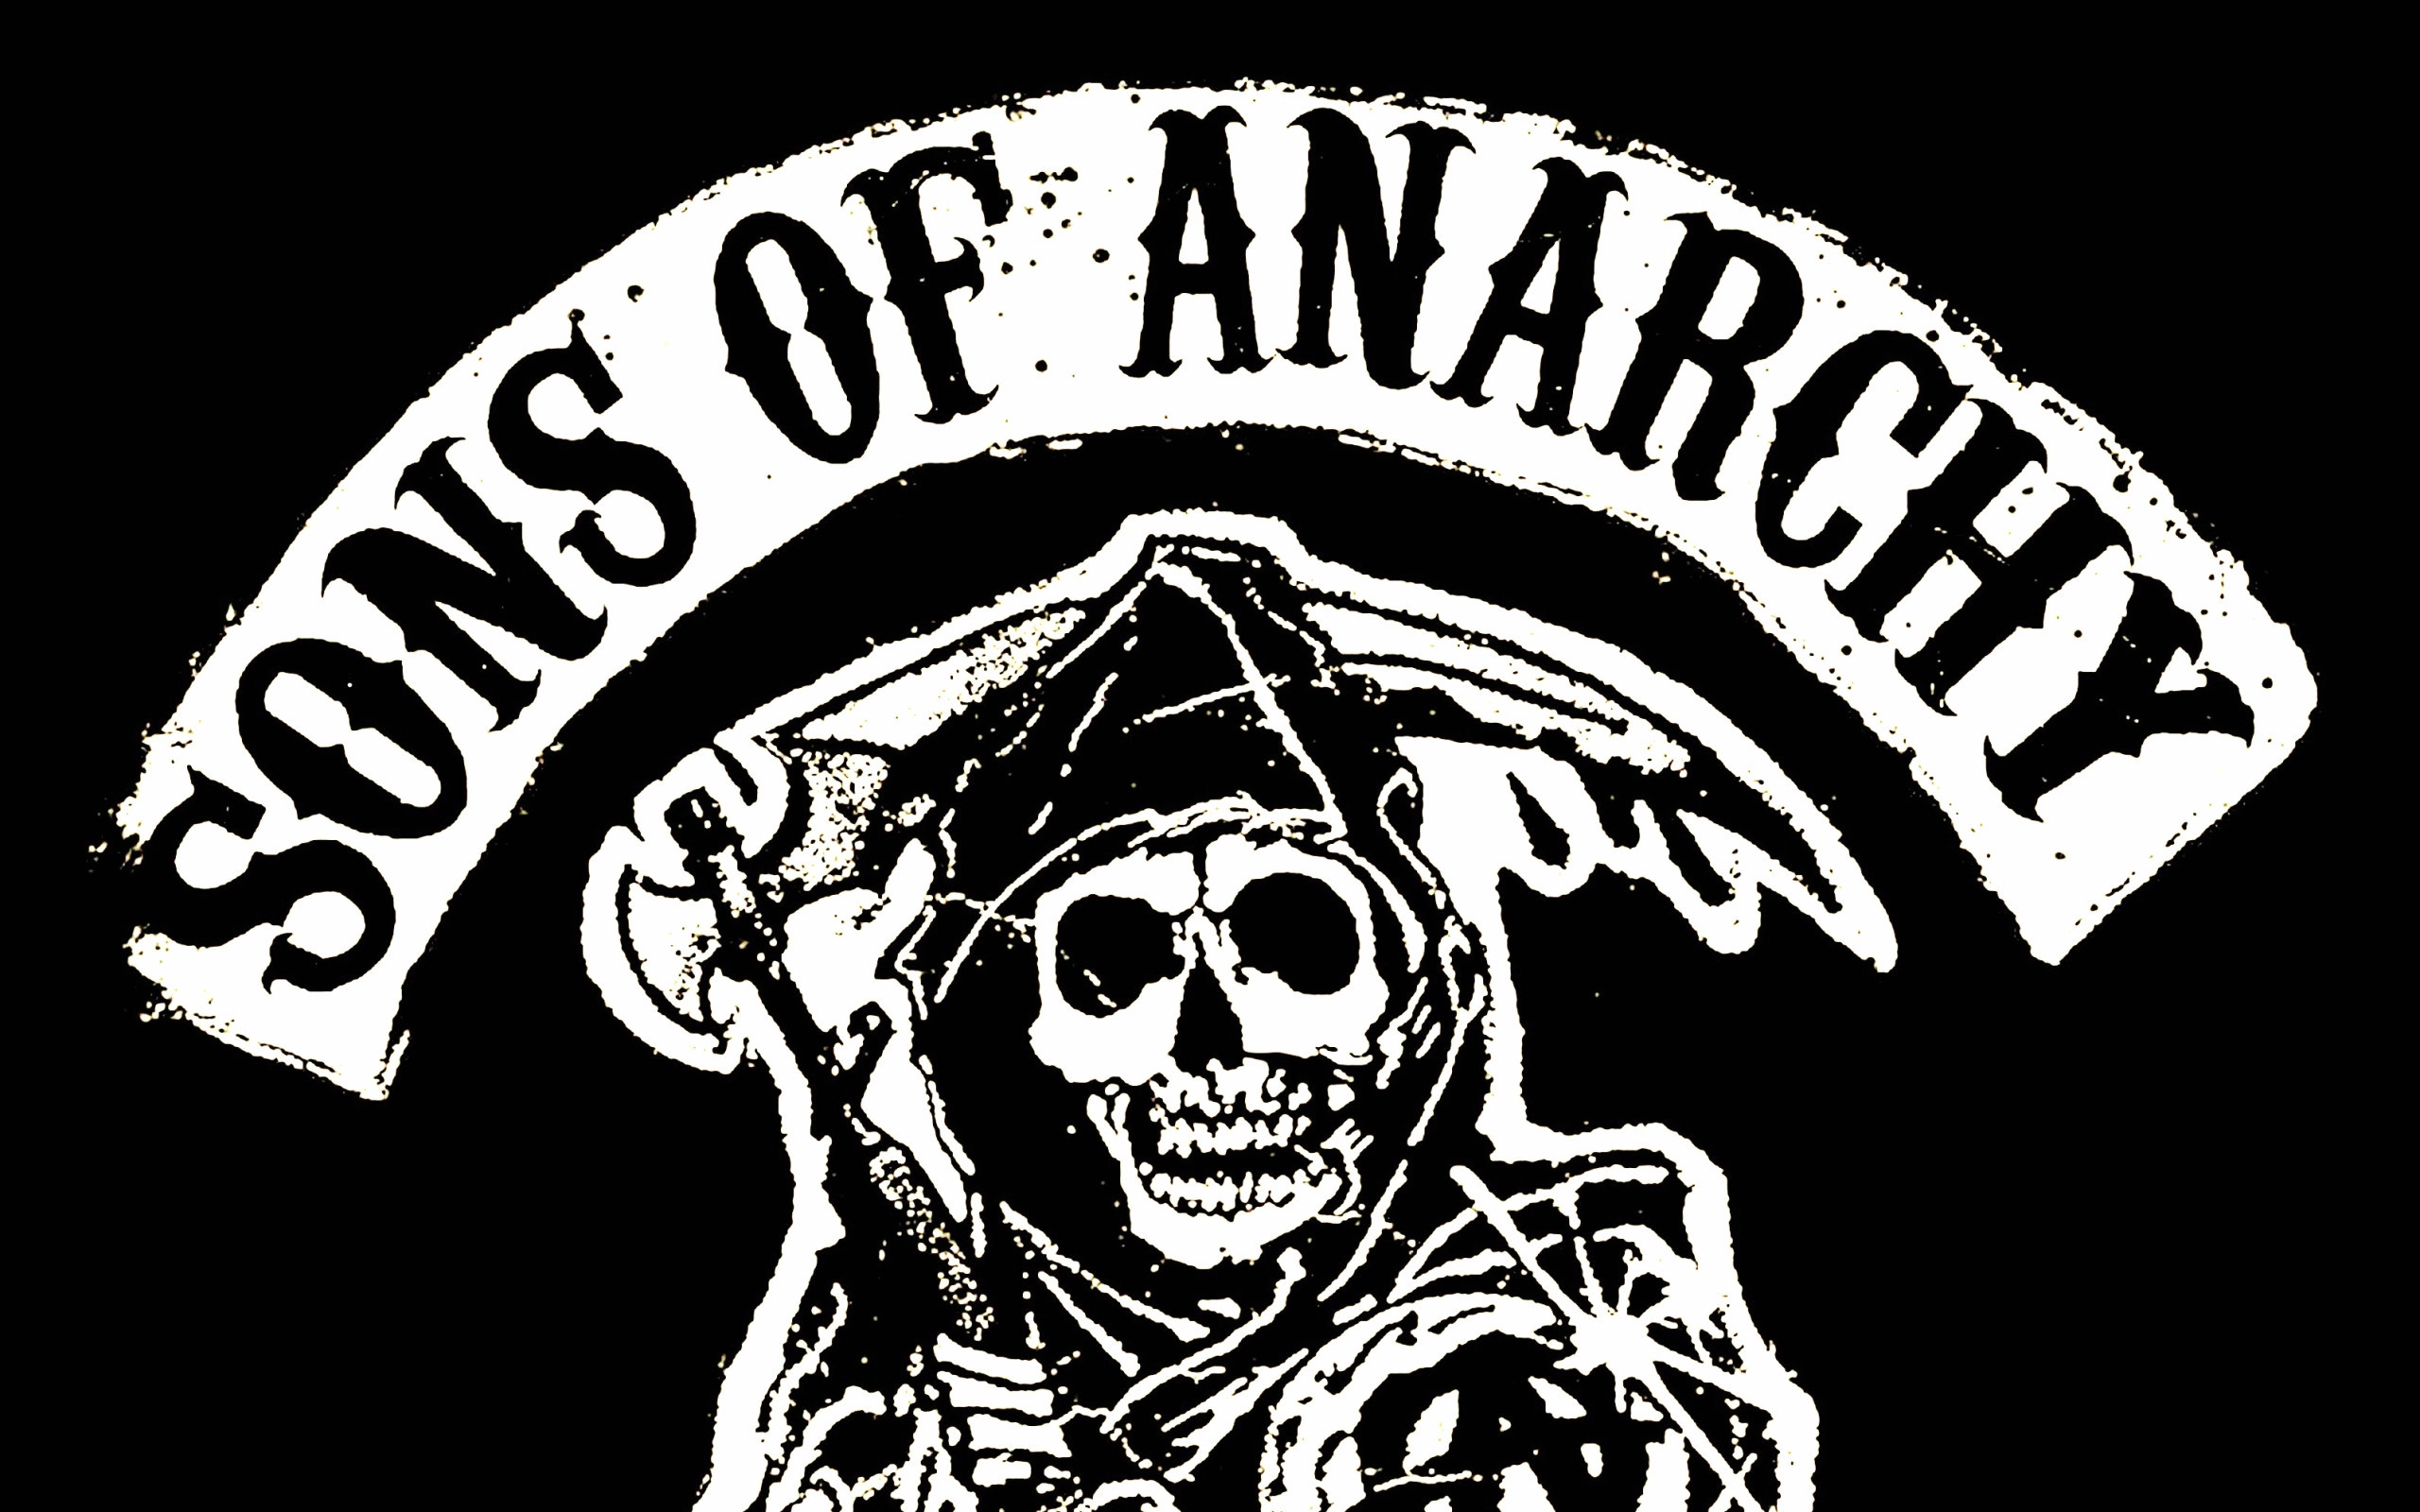 Sons Of Anarchy Hd Wallpaper Posted By Christopher Walker